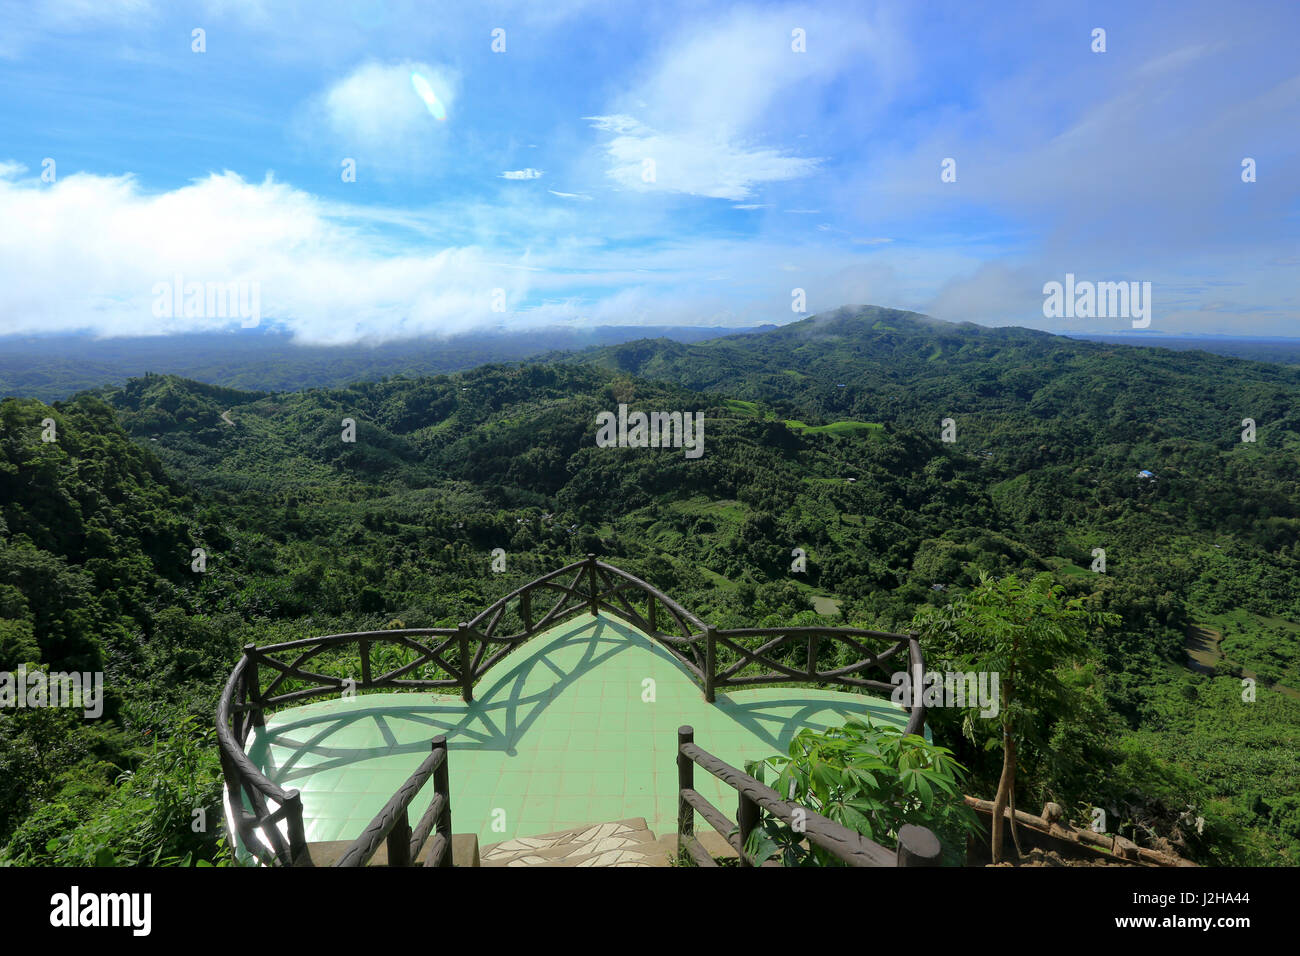 A scenic beauty of Bandarban hill district from Nilachal